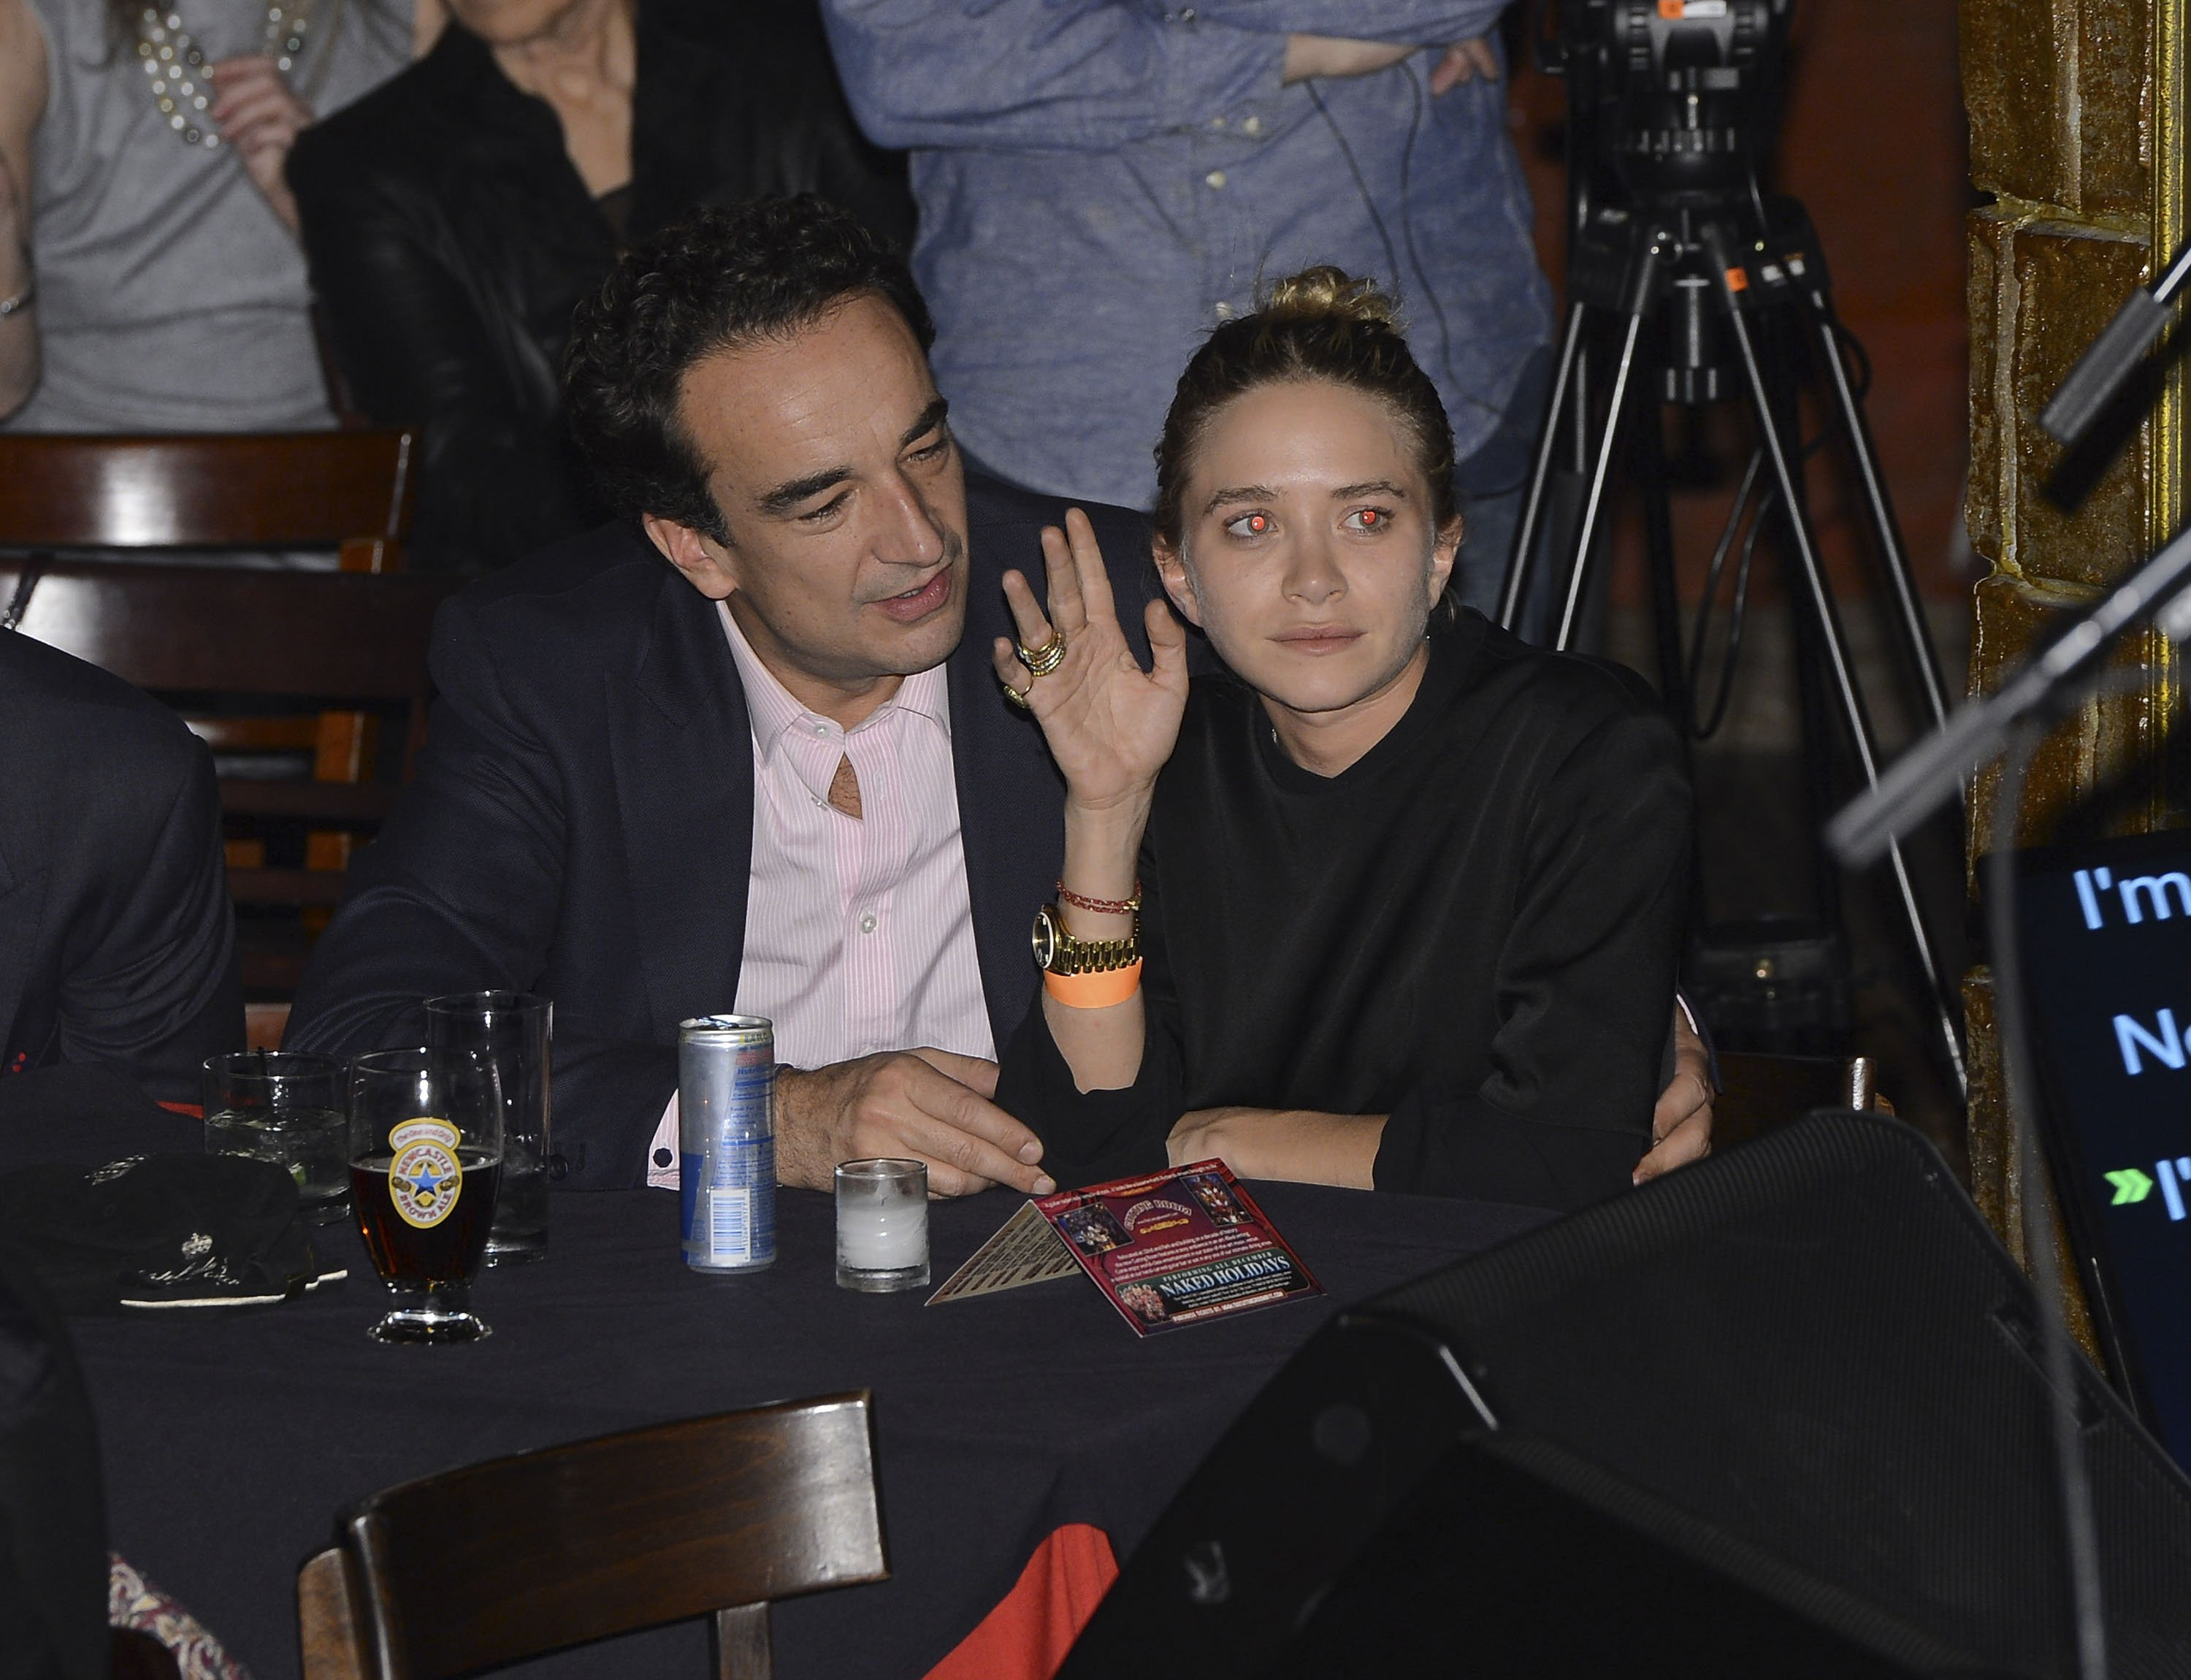 Olivier Sarkozy and Mary-Kate Olsen at The Cutting Room on November 7, 2013, in New York City. | Source: Getty Images.